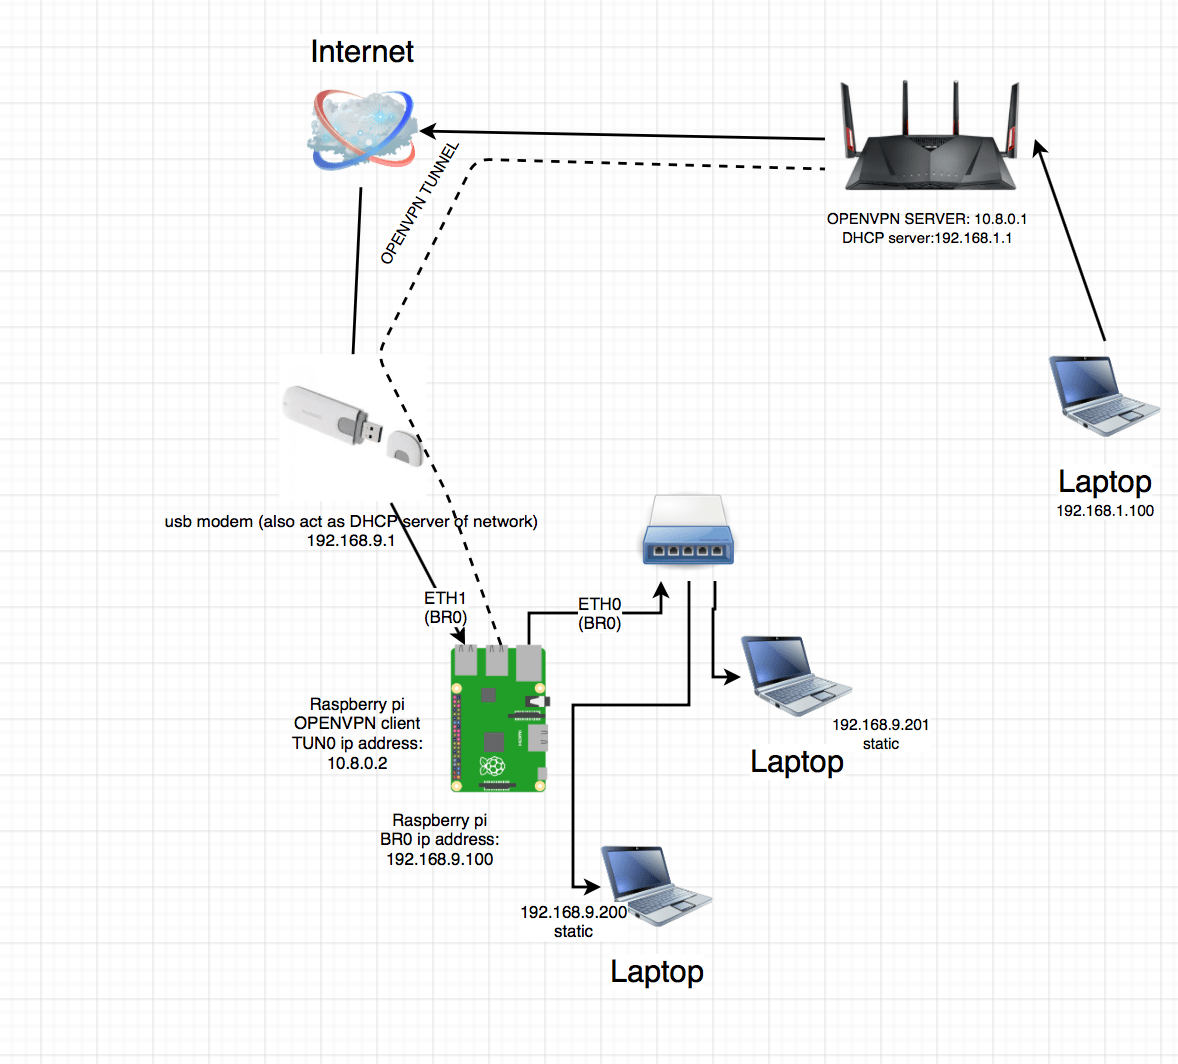 hight resolution of how to connect 2 network over openvpn